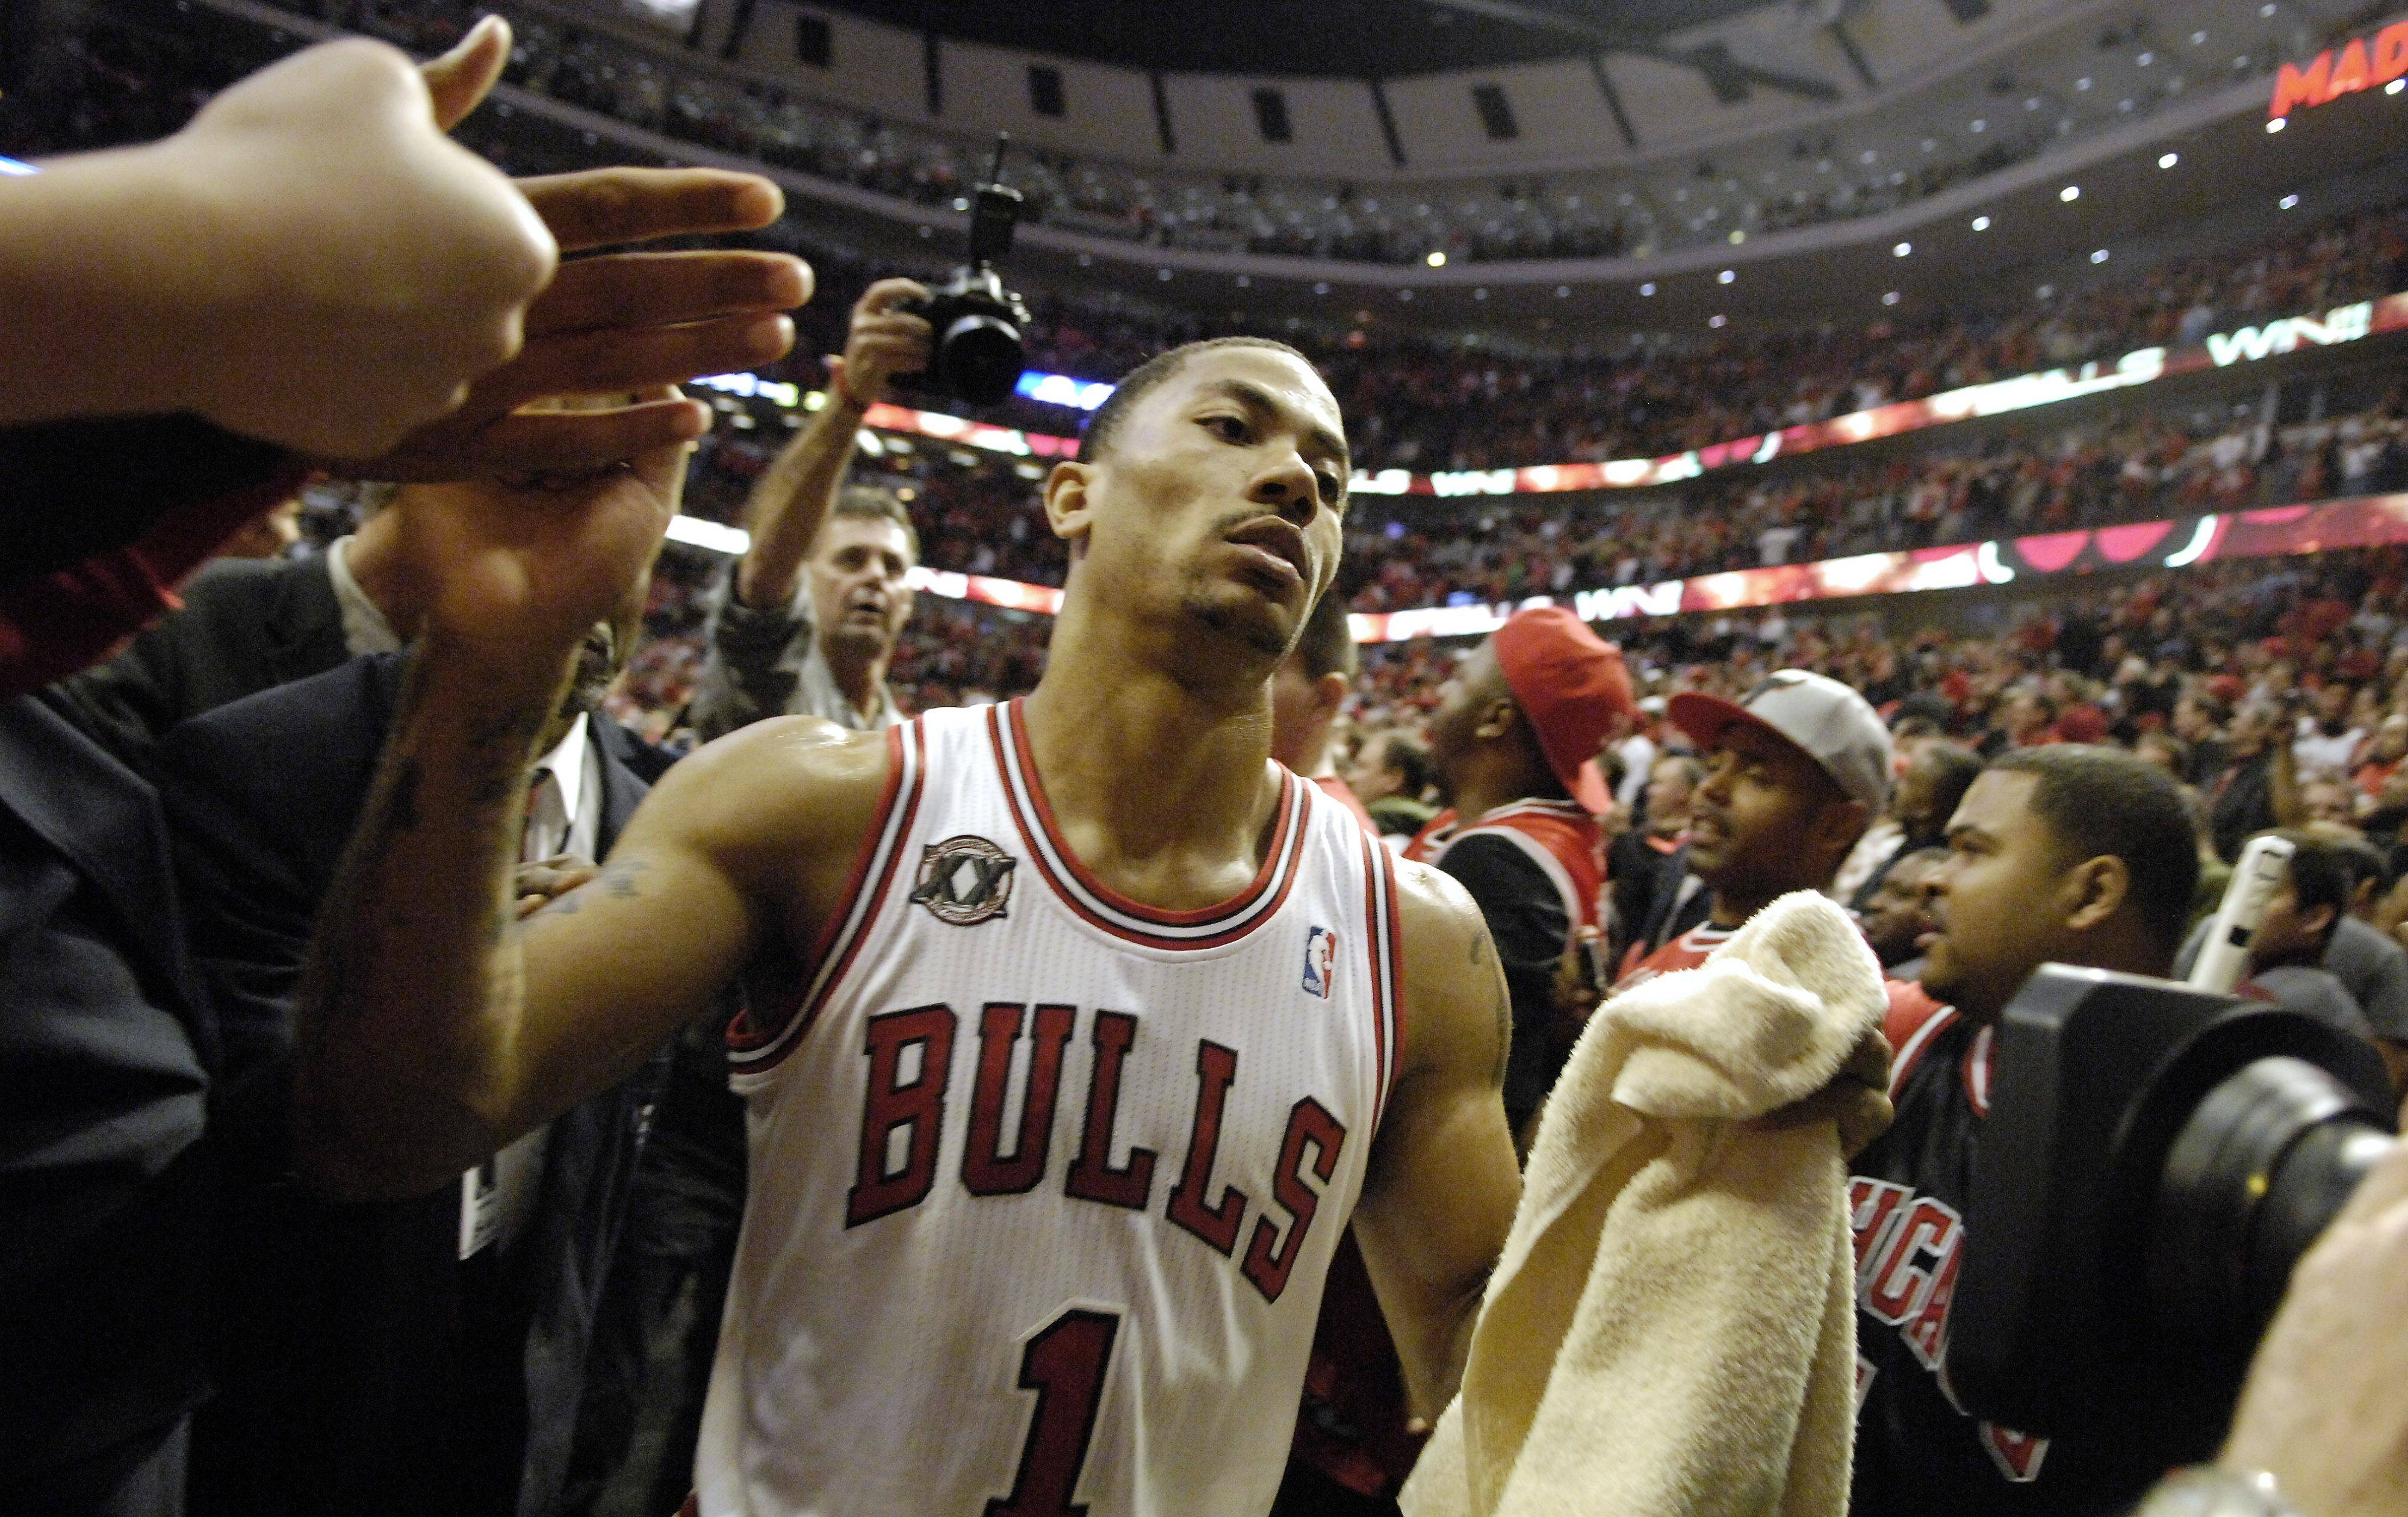 Chicago Bulls point guard Derrick Rose (1) high-fives the fans as he leaves the court after Game One of the NBA Eastern Conference Quarterfinals Saturday at the United Center in Chicago.